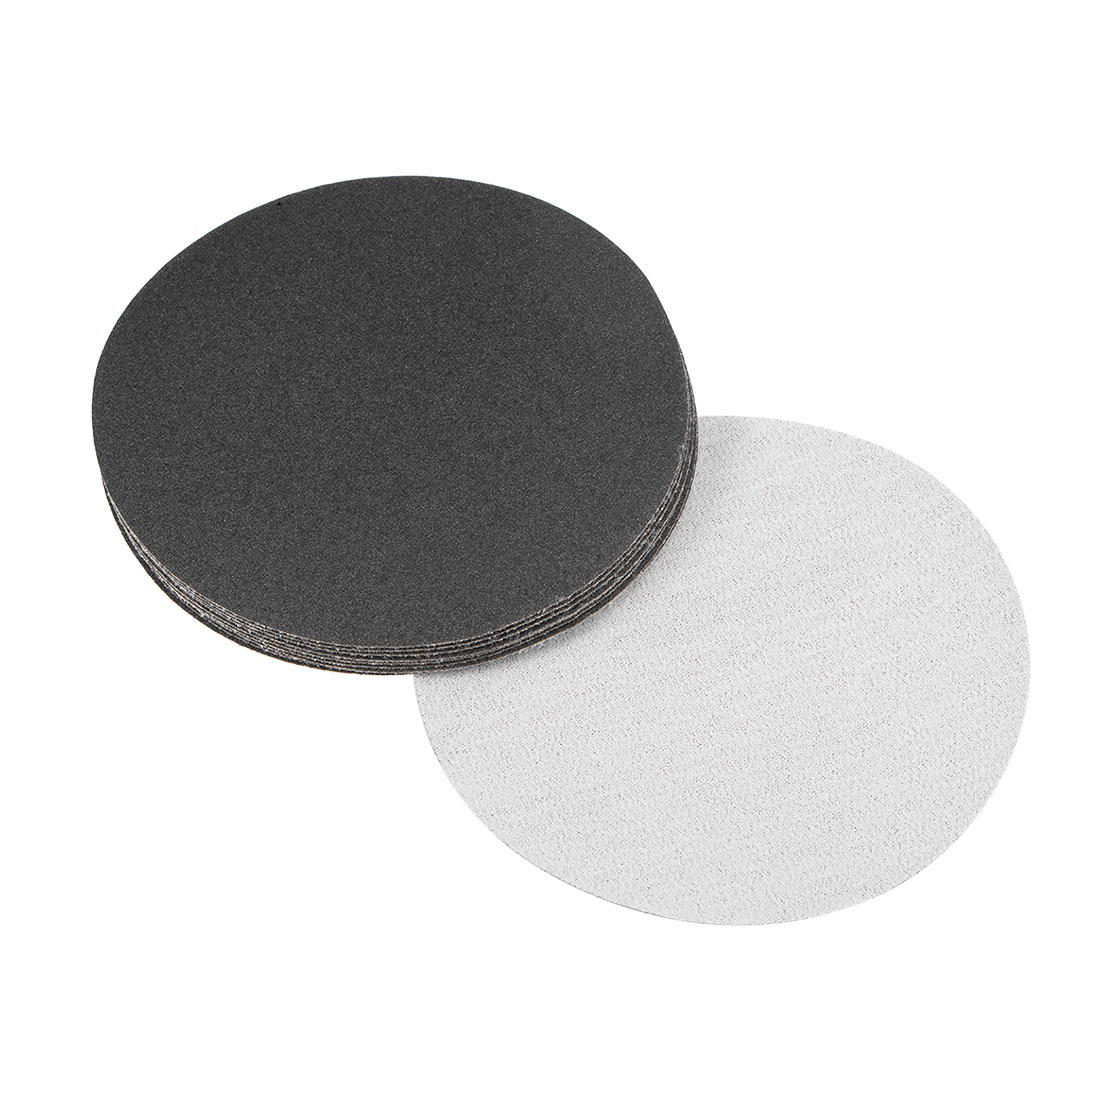 5 inch Wet Dry Discs 180 Grit Hook and Loop Sanding Disc Silicon Carbide 10pcs